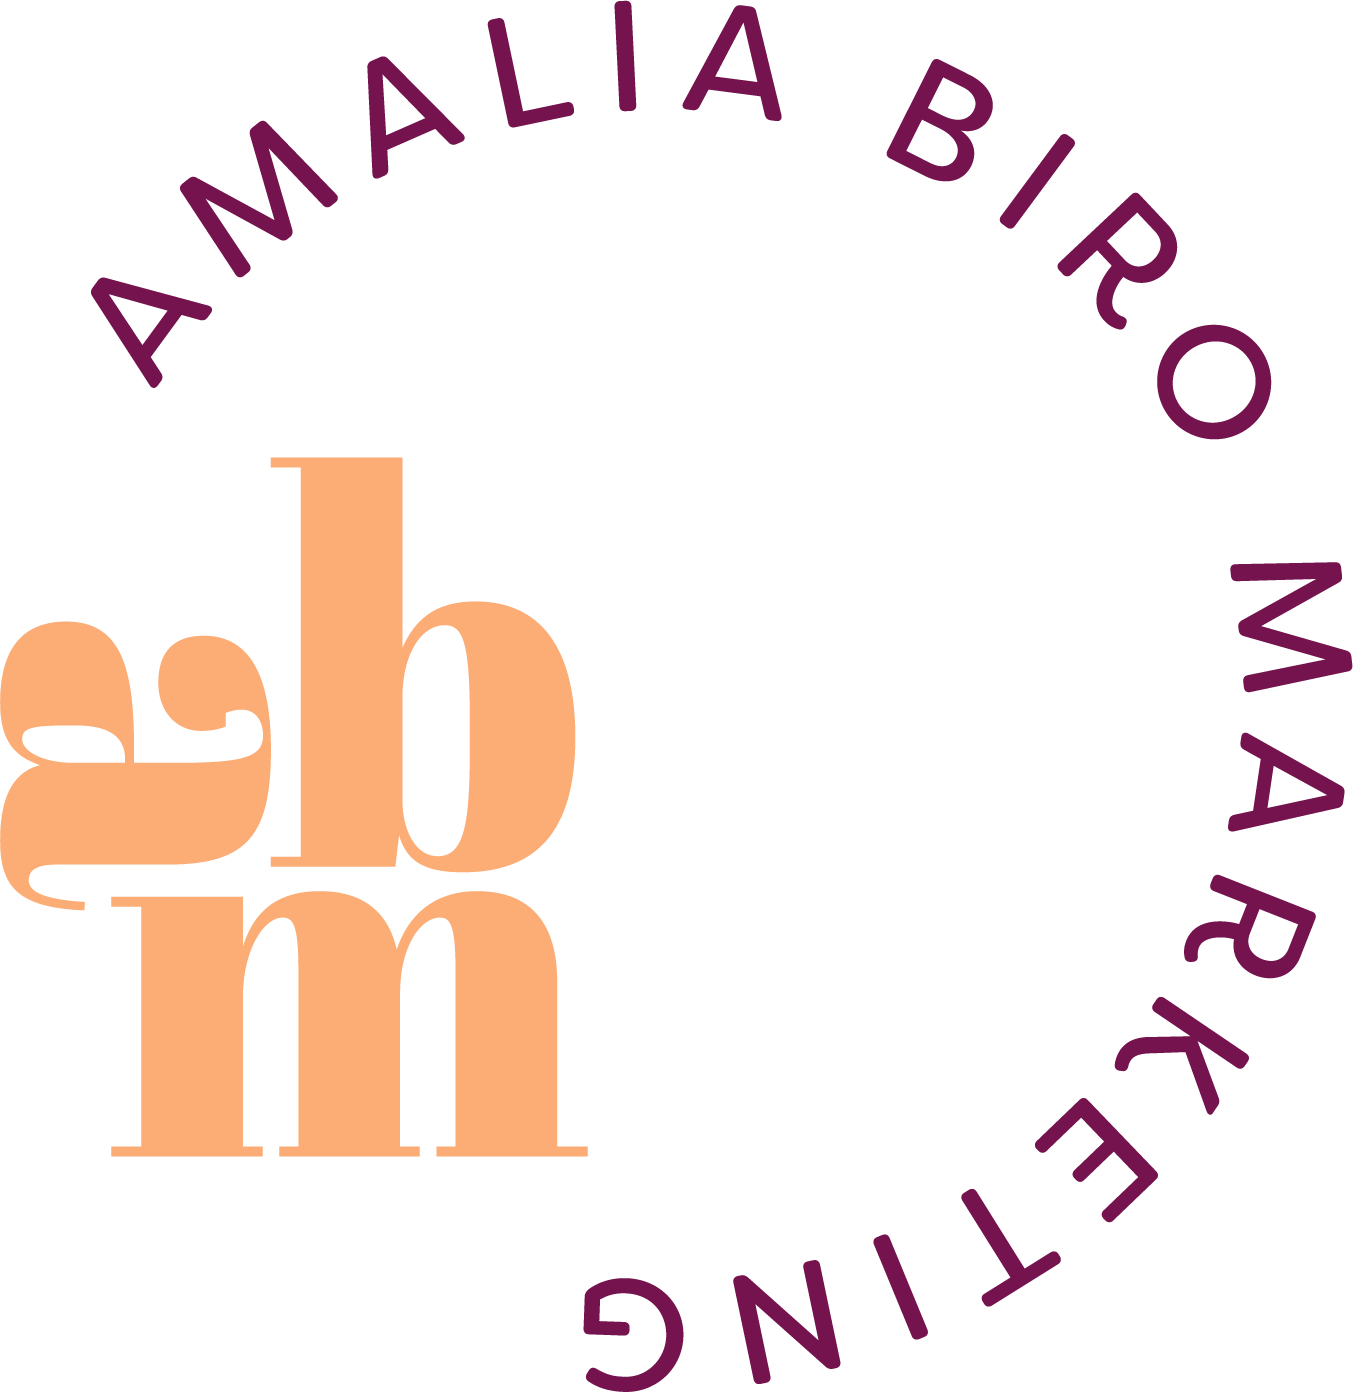 Amalia Biro Marketing